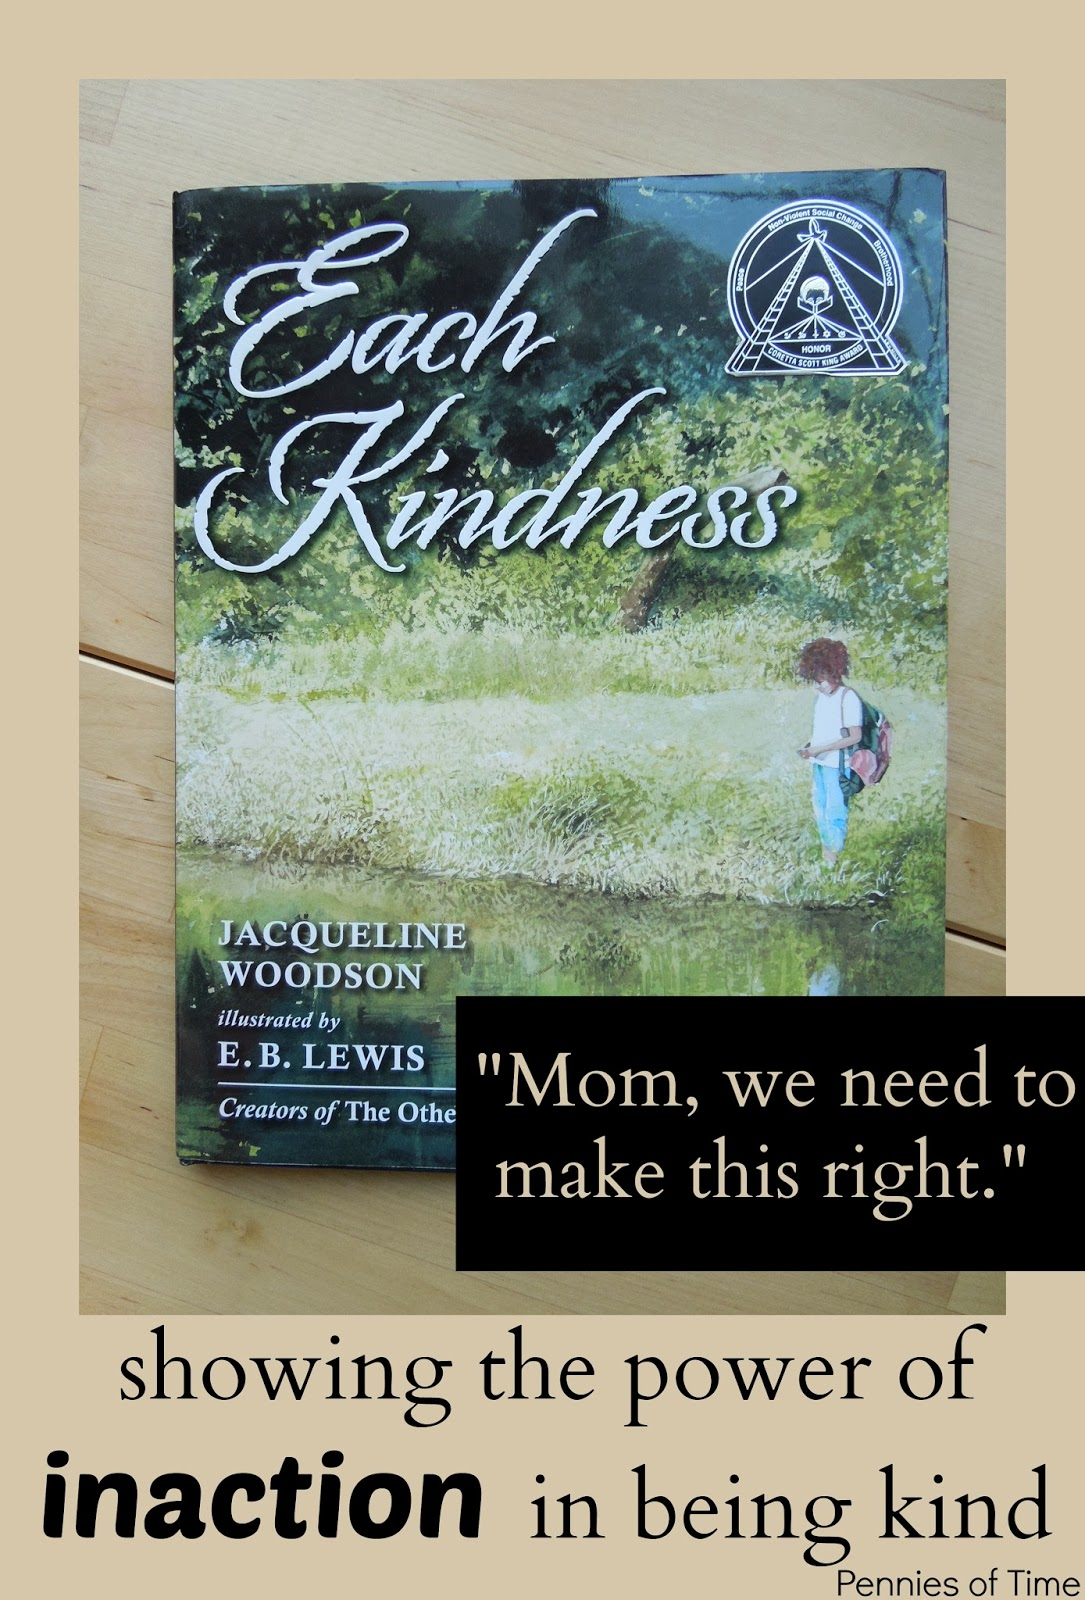 http://penniesoftime.blogspot.com/2014/01/each-kindness-way-to-show-how-action.html